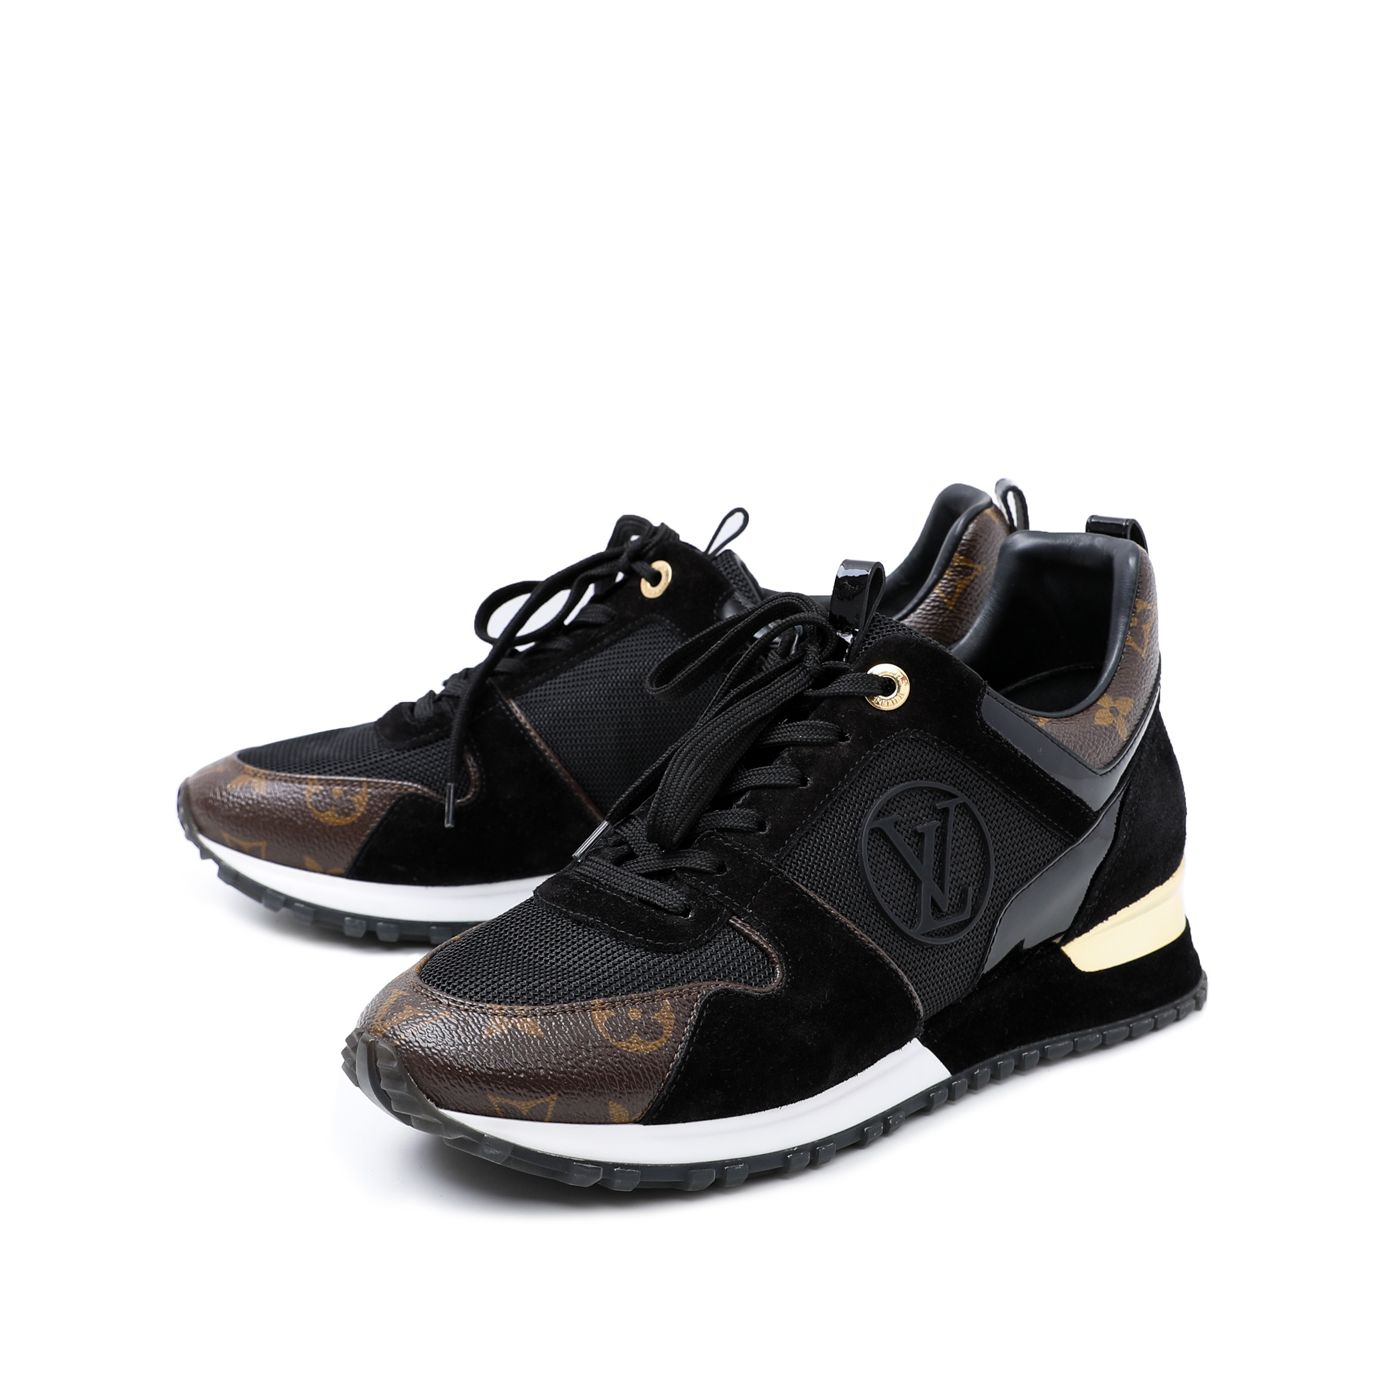 Louis Vuitton Bicolor Monogram Runaway Sneakers 40